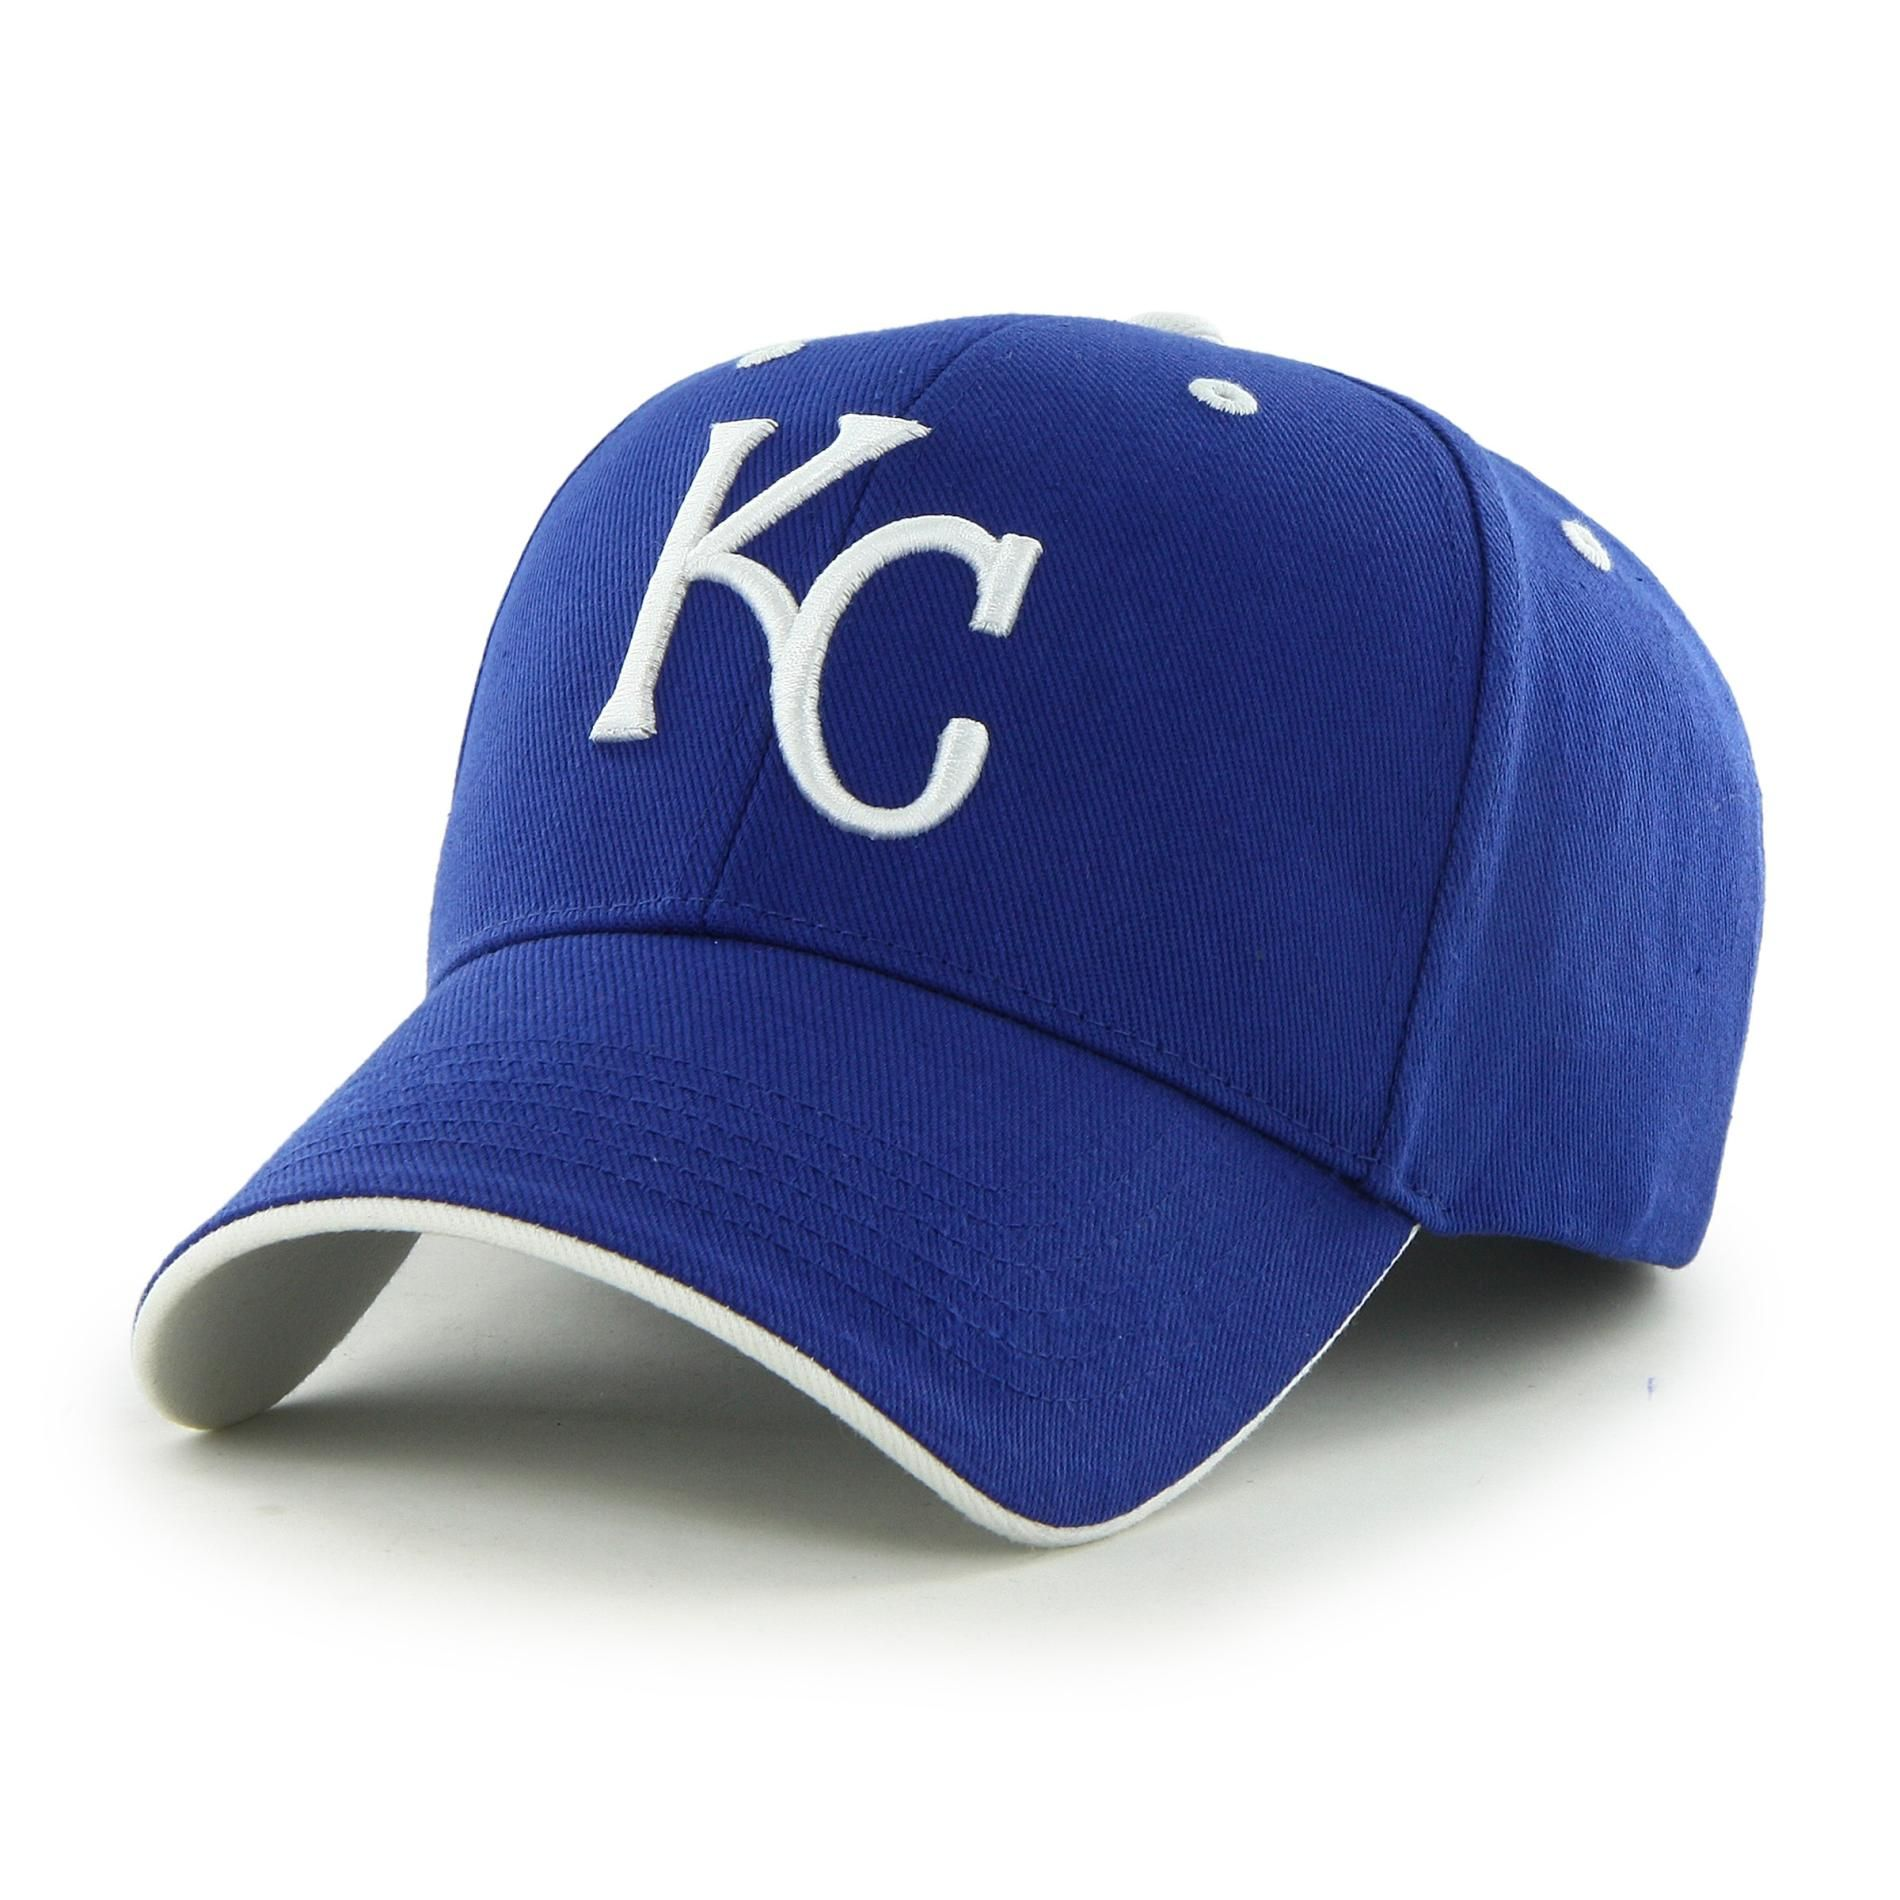 Gear Up For The Next Home Game With This Men S Kansas City Royals Money Maker Baseball Hat From Mlb With A Hook A Kansas City Royals Baseball Hats Kansas City